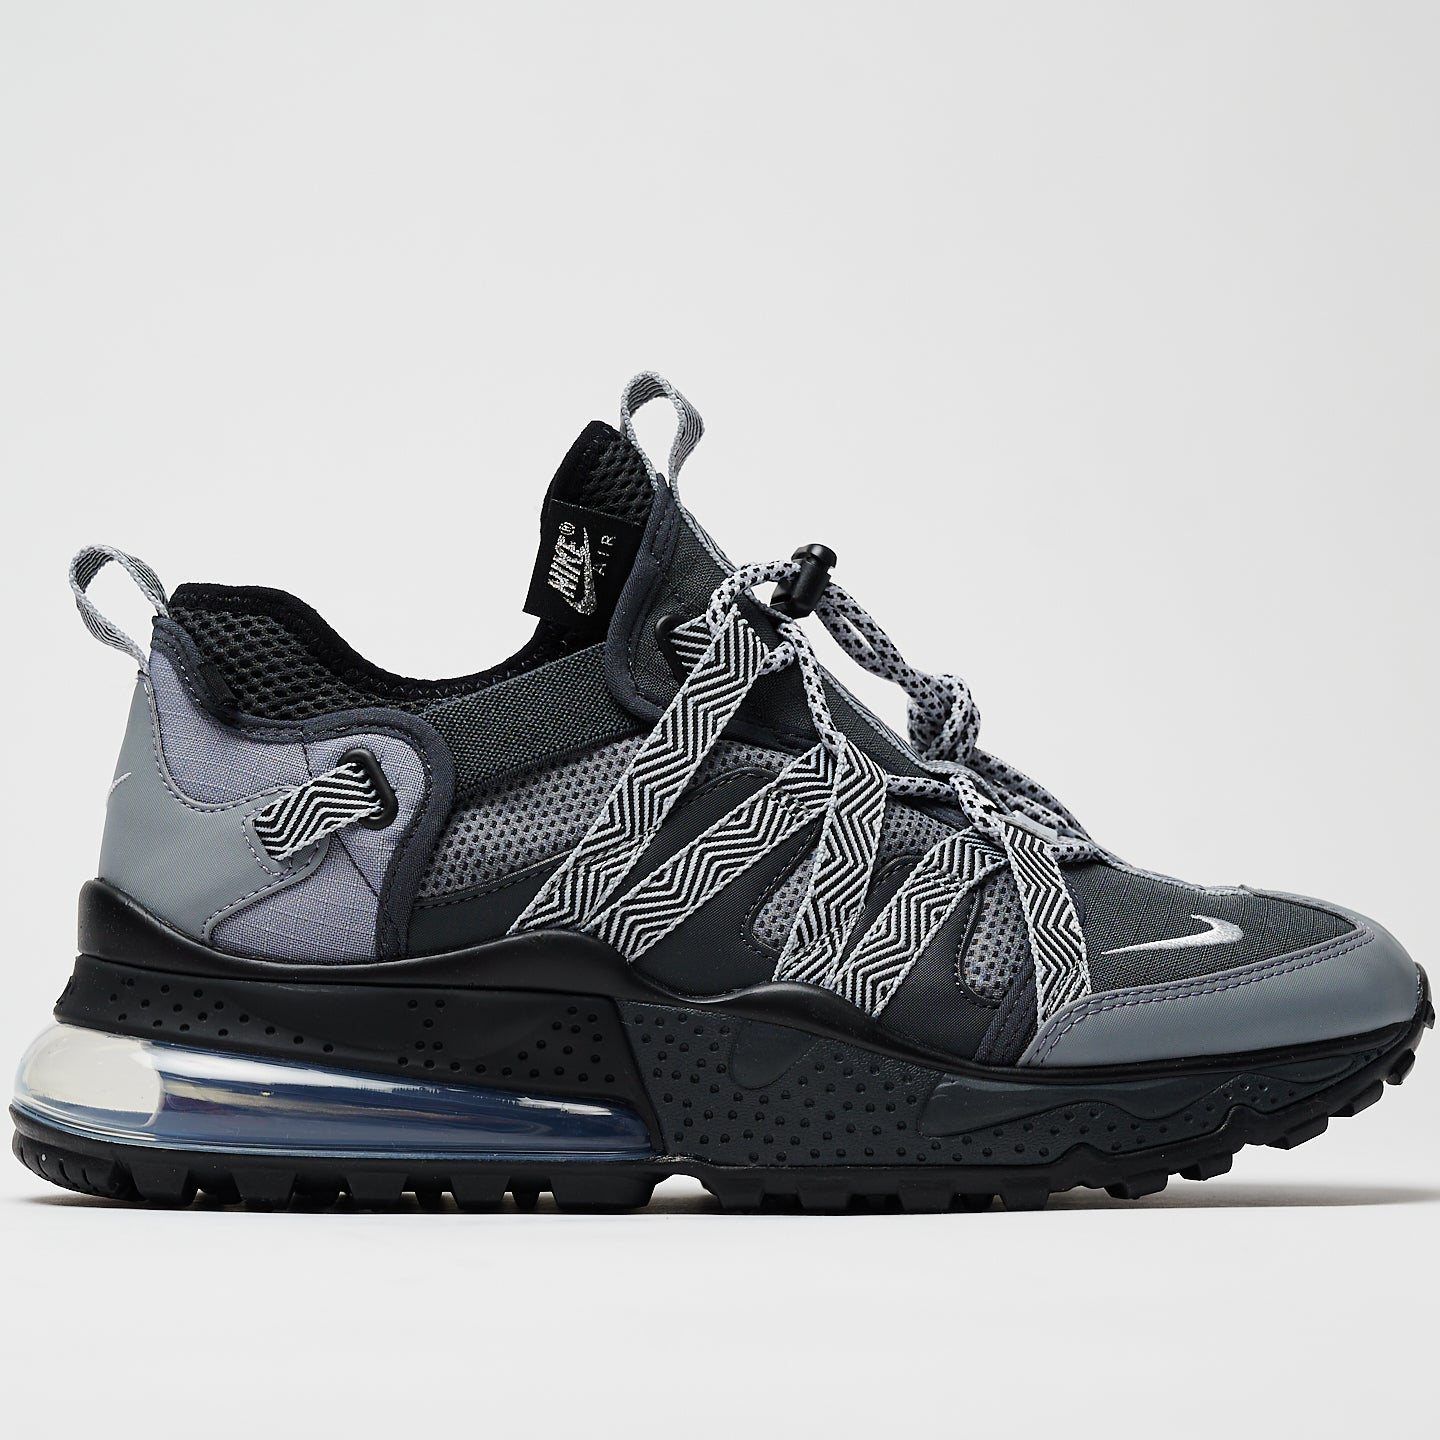 NIKE M'S FOOTWEAR AIR MAX 270 BOWFIN - ANTHRACITE/METALLIC SILVER